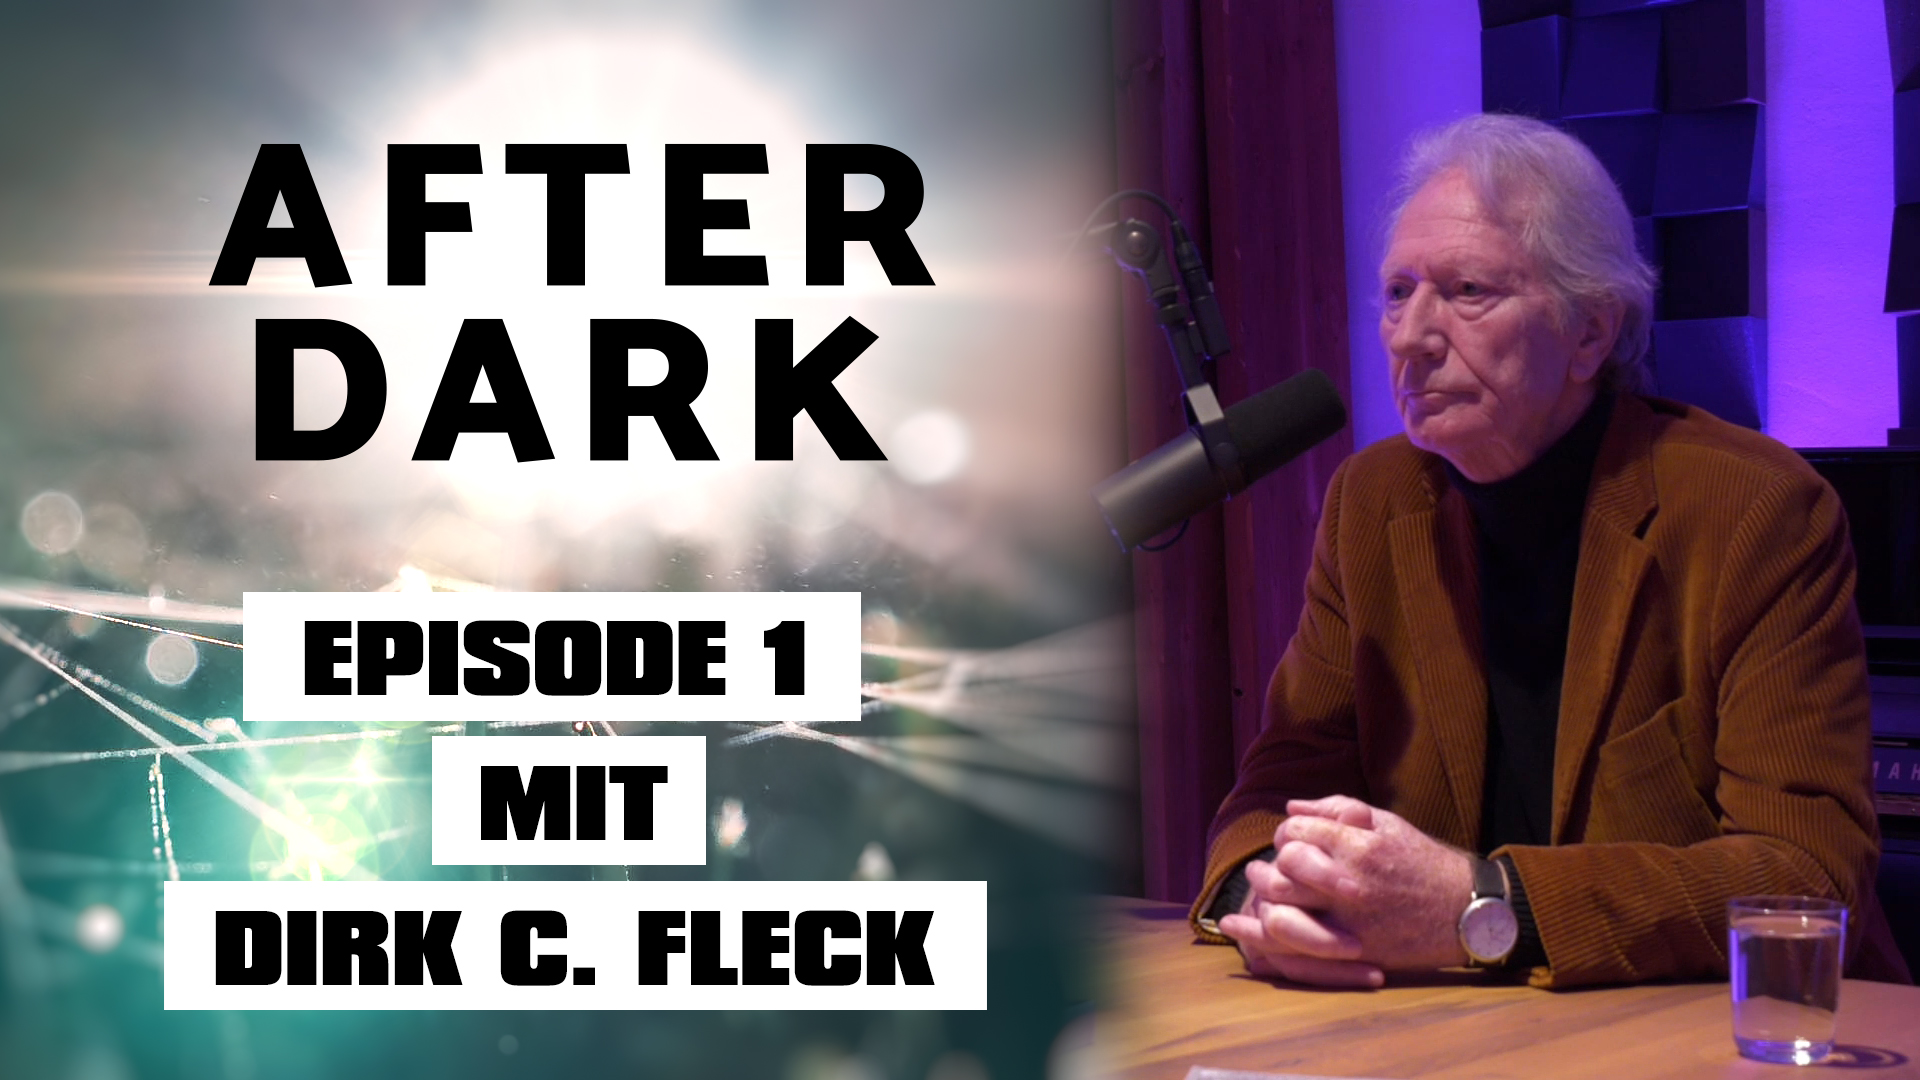 AFTER DARK EPISODE 1 mit Dirk C. Fleck